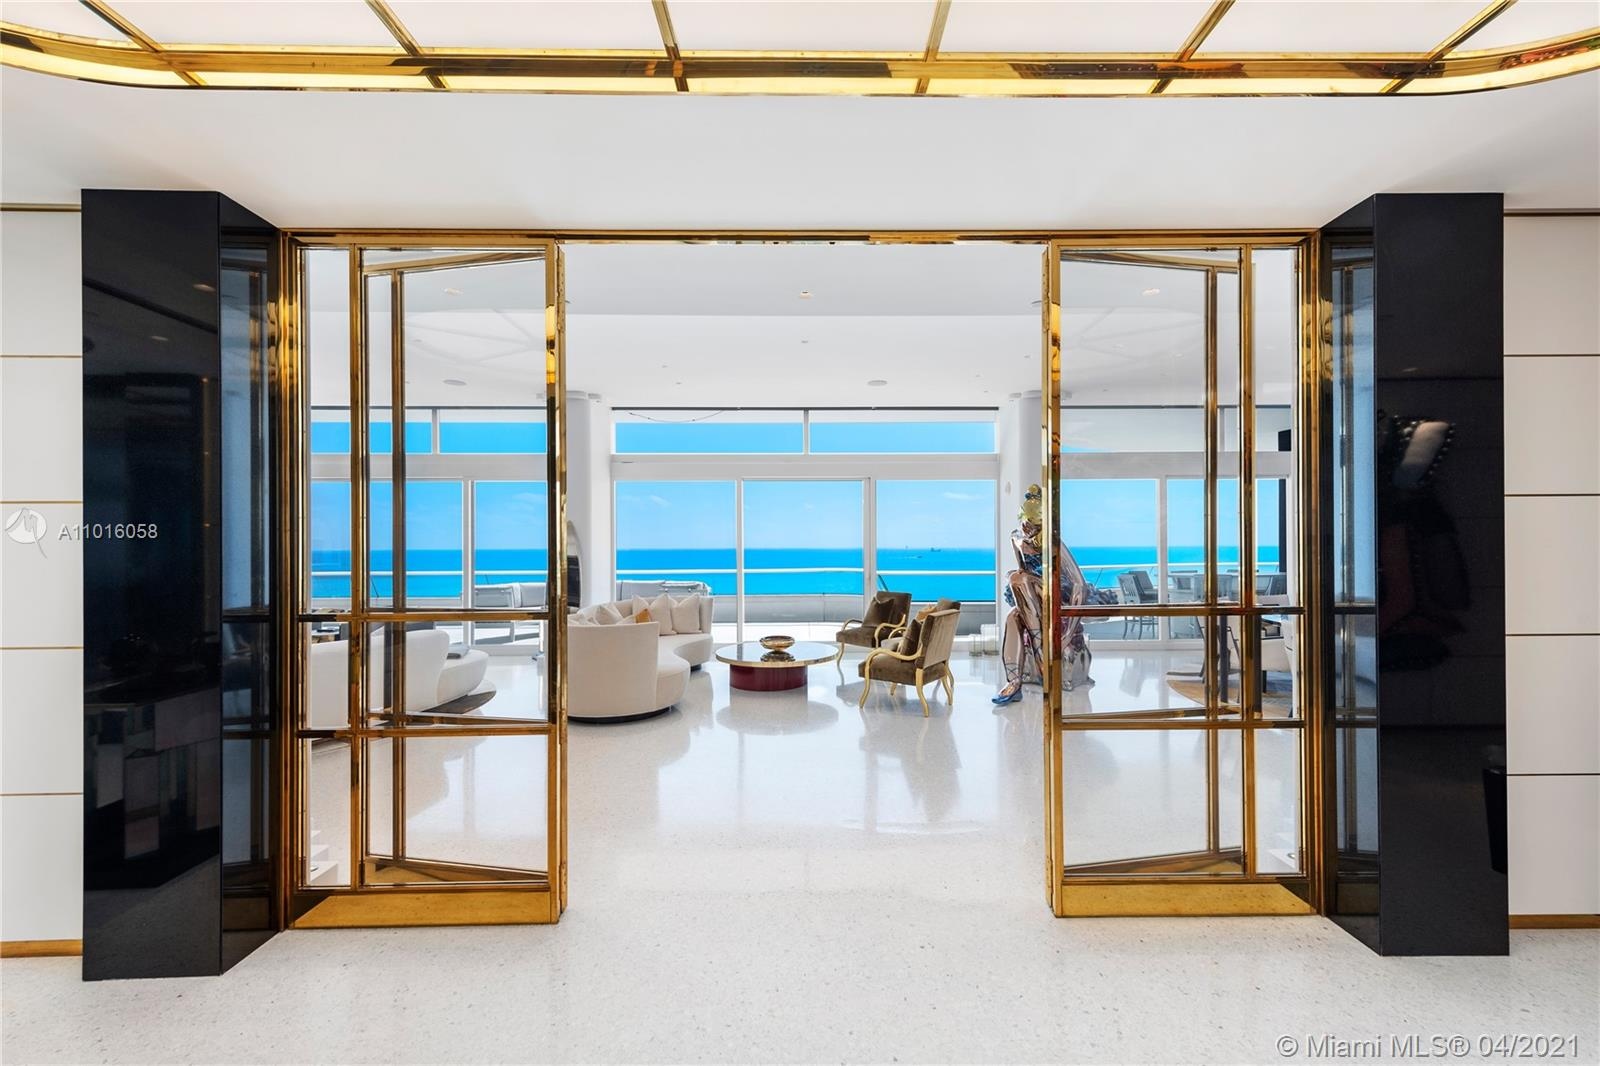 IMPECCABLY DESIGNED ART DECO PENTHOUSE MASTERPIECE BY WETZELS BROWN PARTNERS OF AMSTERDAM CROWNS FAENA HOUSE...ONE OF THE MOST EXCLUSIVE BOUTIQUE TOWERS IN MIAMI BEACH CREATED BY FOSTER + PARTNERS! Mansion in the Sky w/ 270° Views of Ocean, City & Bay. 6 Beds + 6.5 Baths in 6,400 SF of Living Space & Nearly 4,000 SF of Exterior Space. Private Elevator Foyer Arrival into Fine Art Gallery. Nanz Ebony Handles Greet you w/ Ocean Views. Italian Terrazzo Floors t/o Entertaining Areas w/ Dining for 14 Guests. High-Gloss Ebony Bookcase by Metrica + LED Lighting. Molteni Gourmet Eat-in Kitchen + Miele Appliances. Oceanfront Master Suite w/ Custom Built Ebony Furnishings. Rare Textured & Hand-Painted Walls in All Bedrooms. All Baths equipped w/ Dornbracht & Duravit Fixtures. Crestron Home Automation